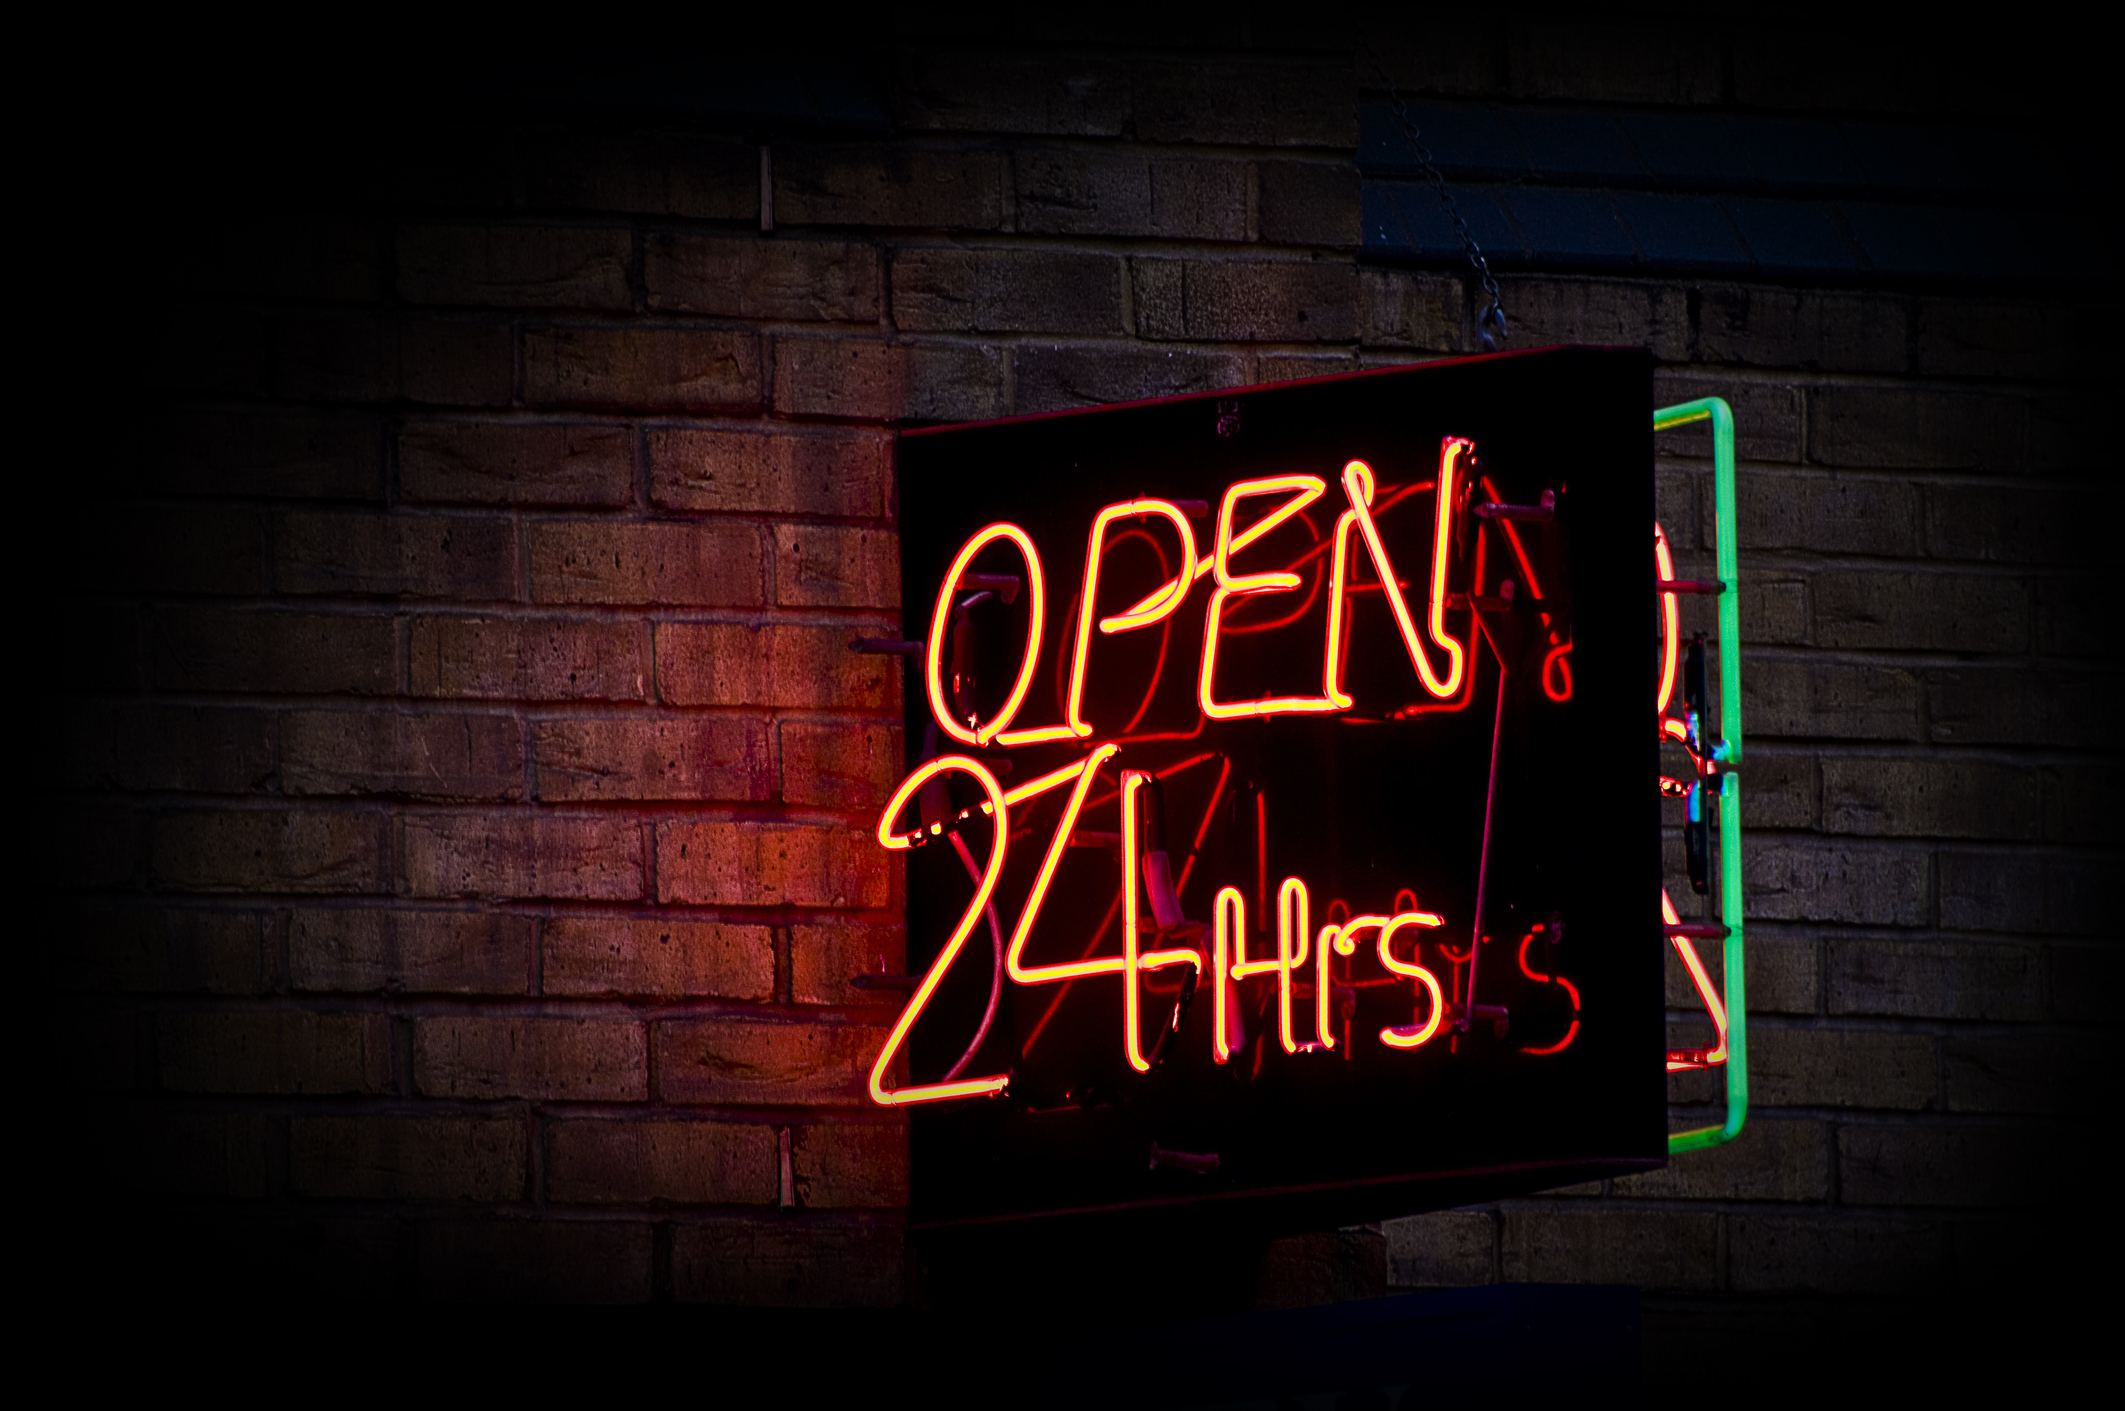 Neon orange Open 24 hours sign